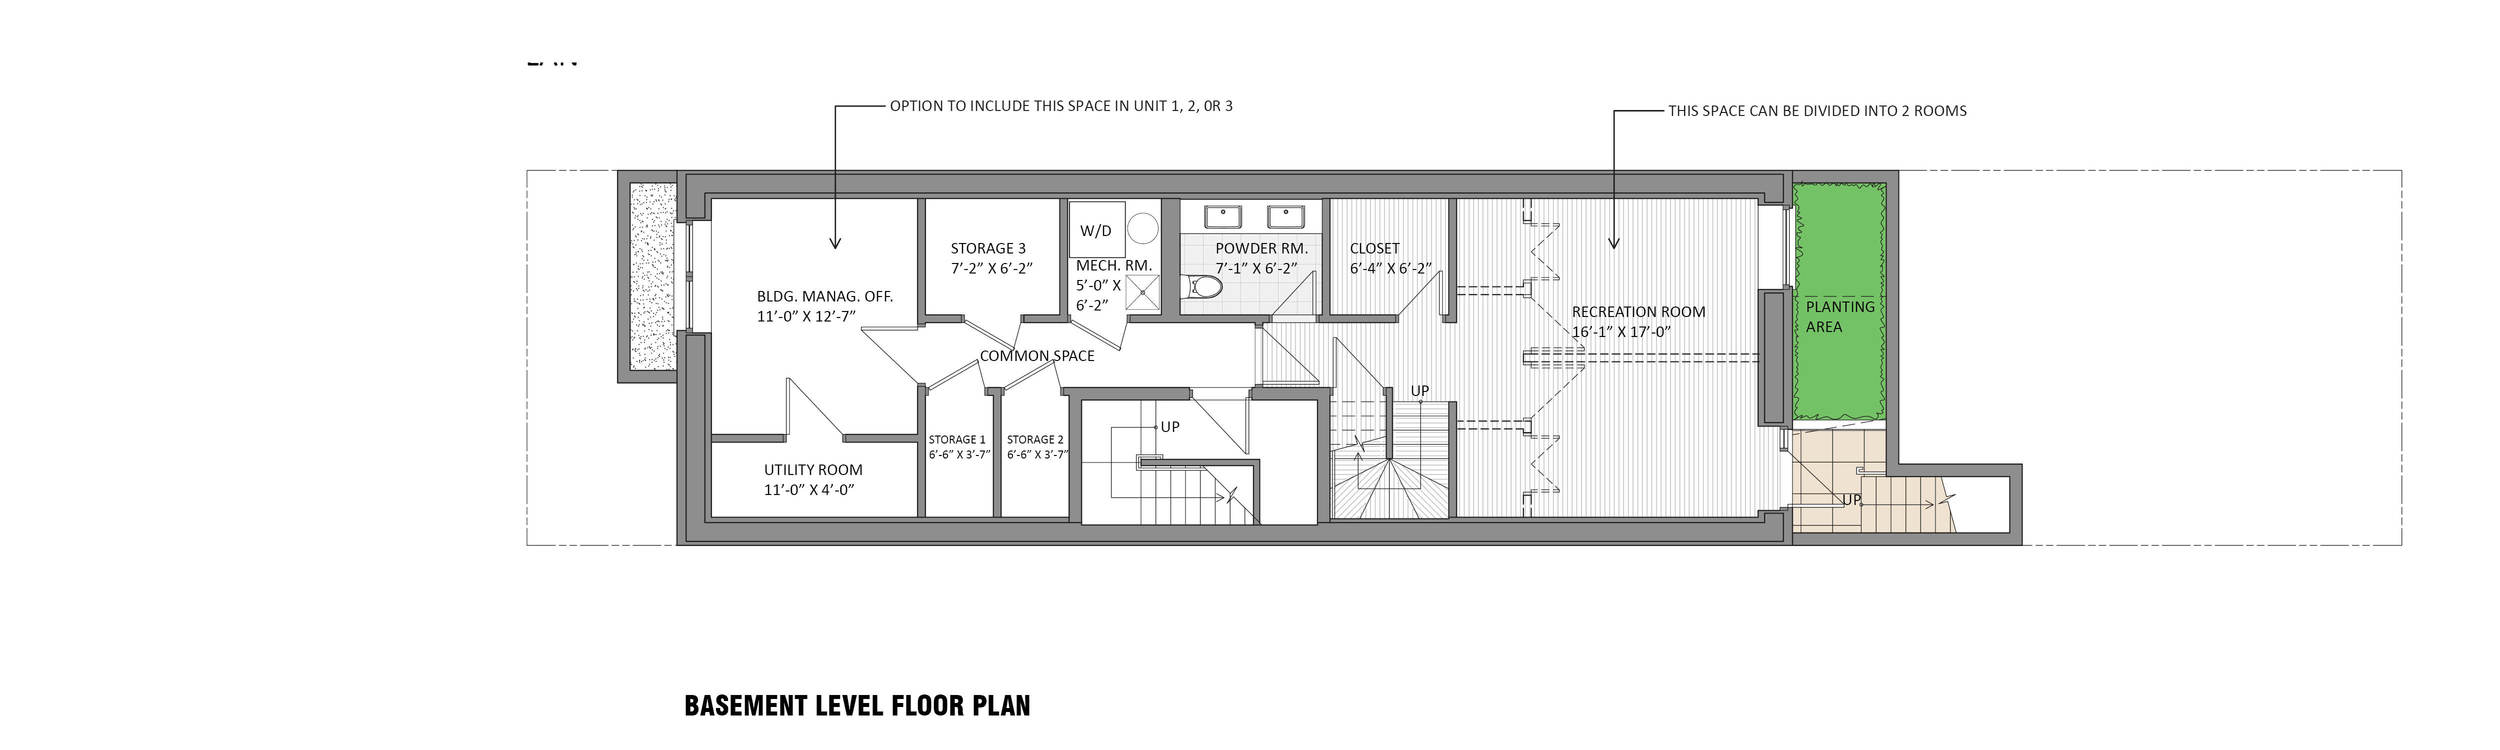 Floor Plan cropped_Website2.jpg